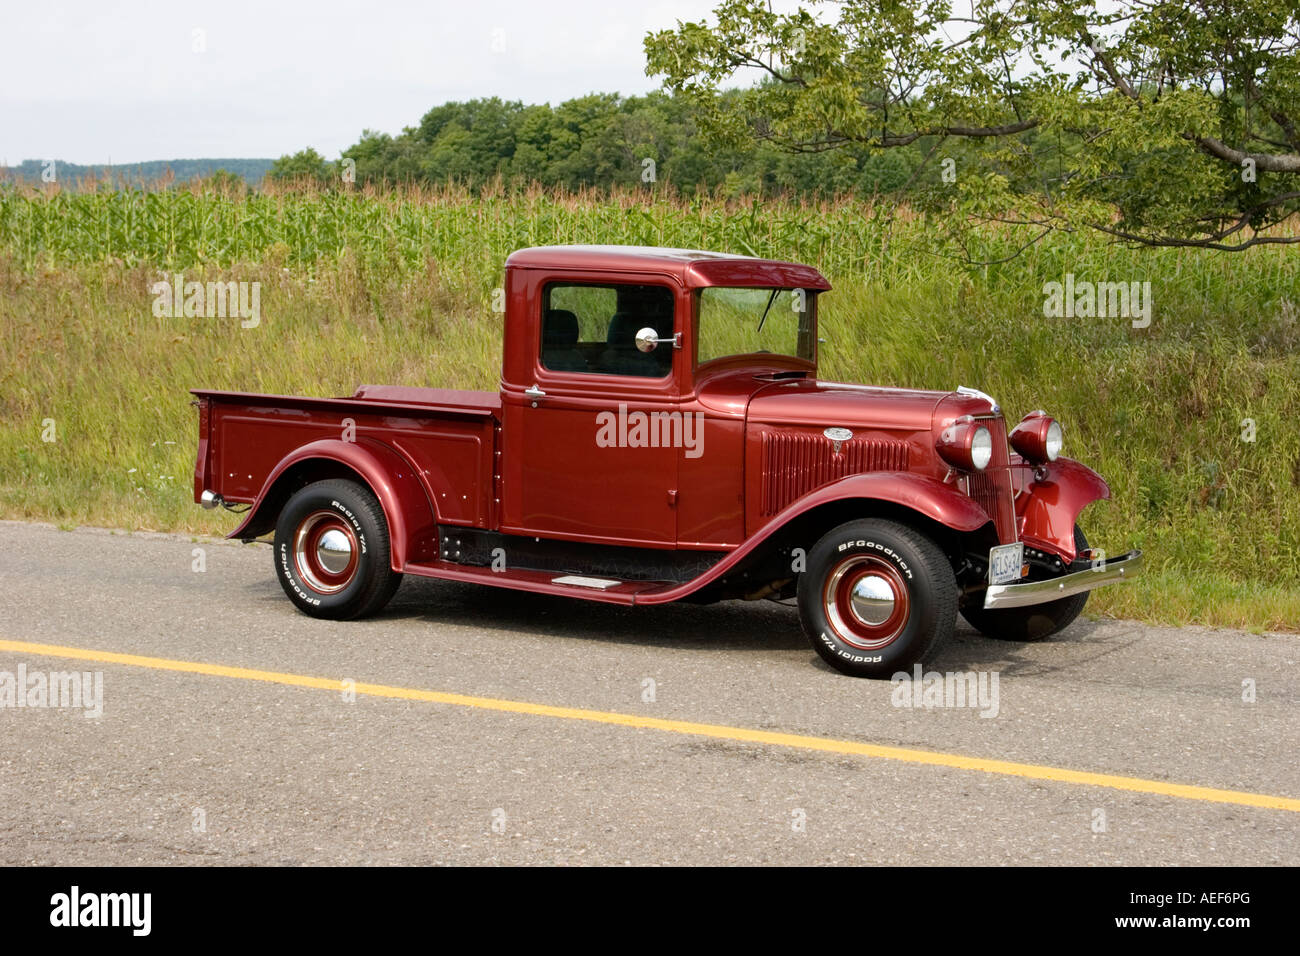 1934 ford pickup truck stock photos 1934 ford pickup. Black Bedroom Furniture Sets. Home Design Ideas